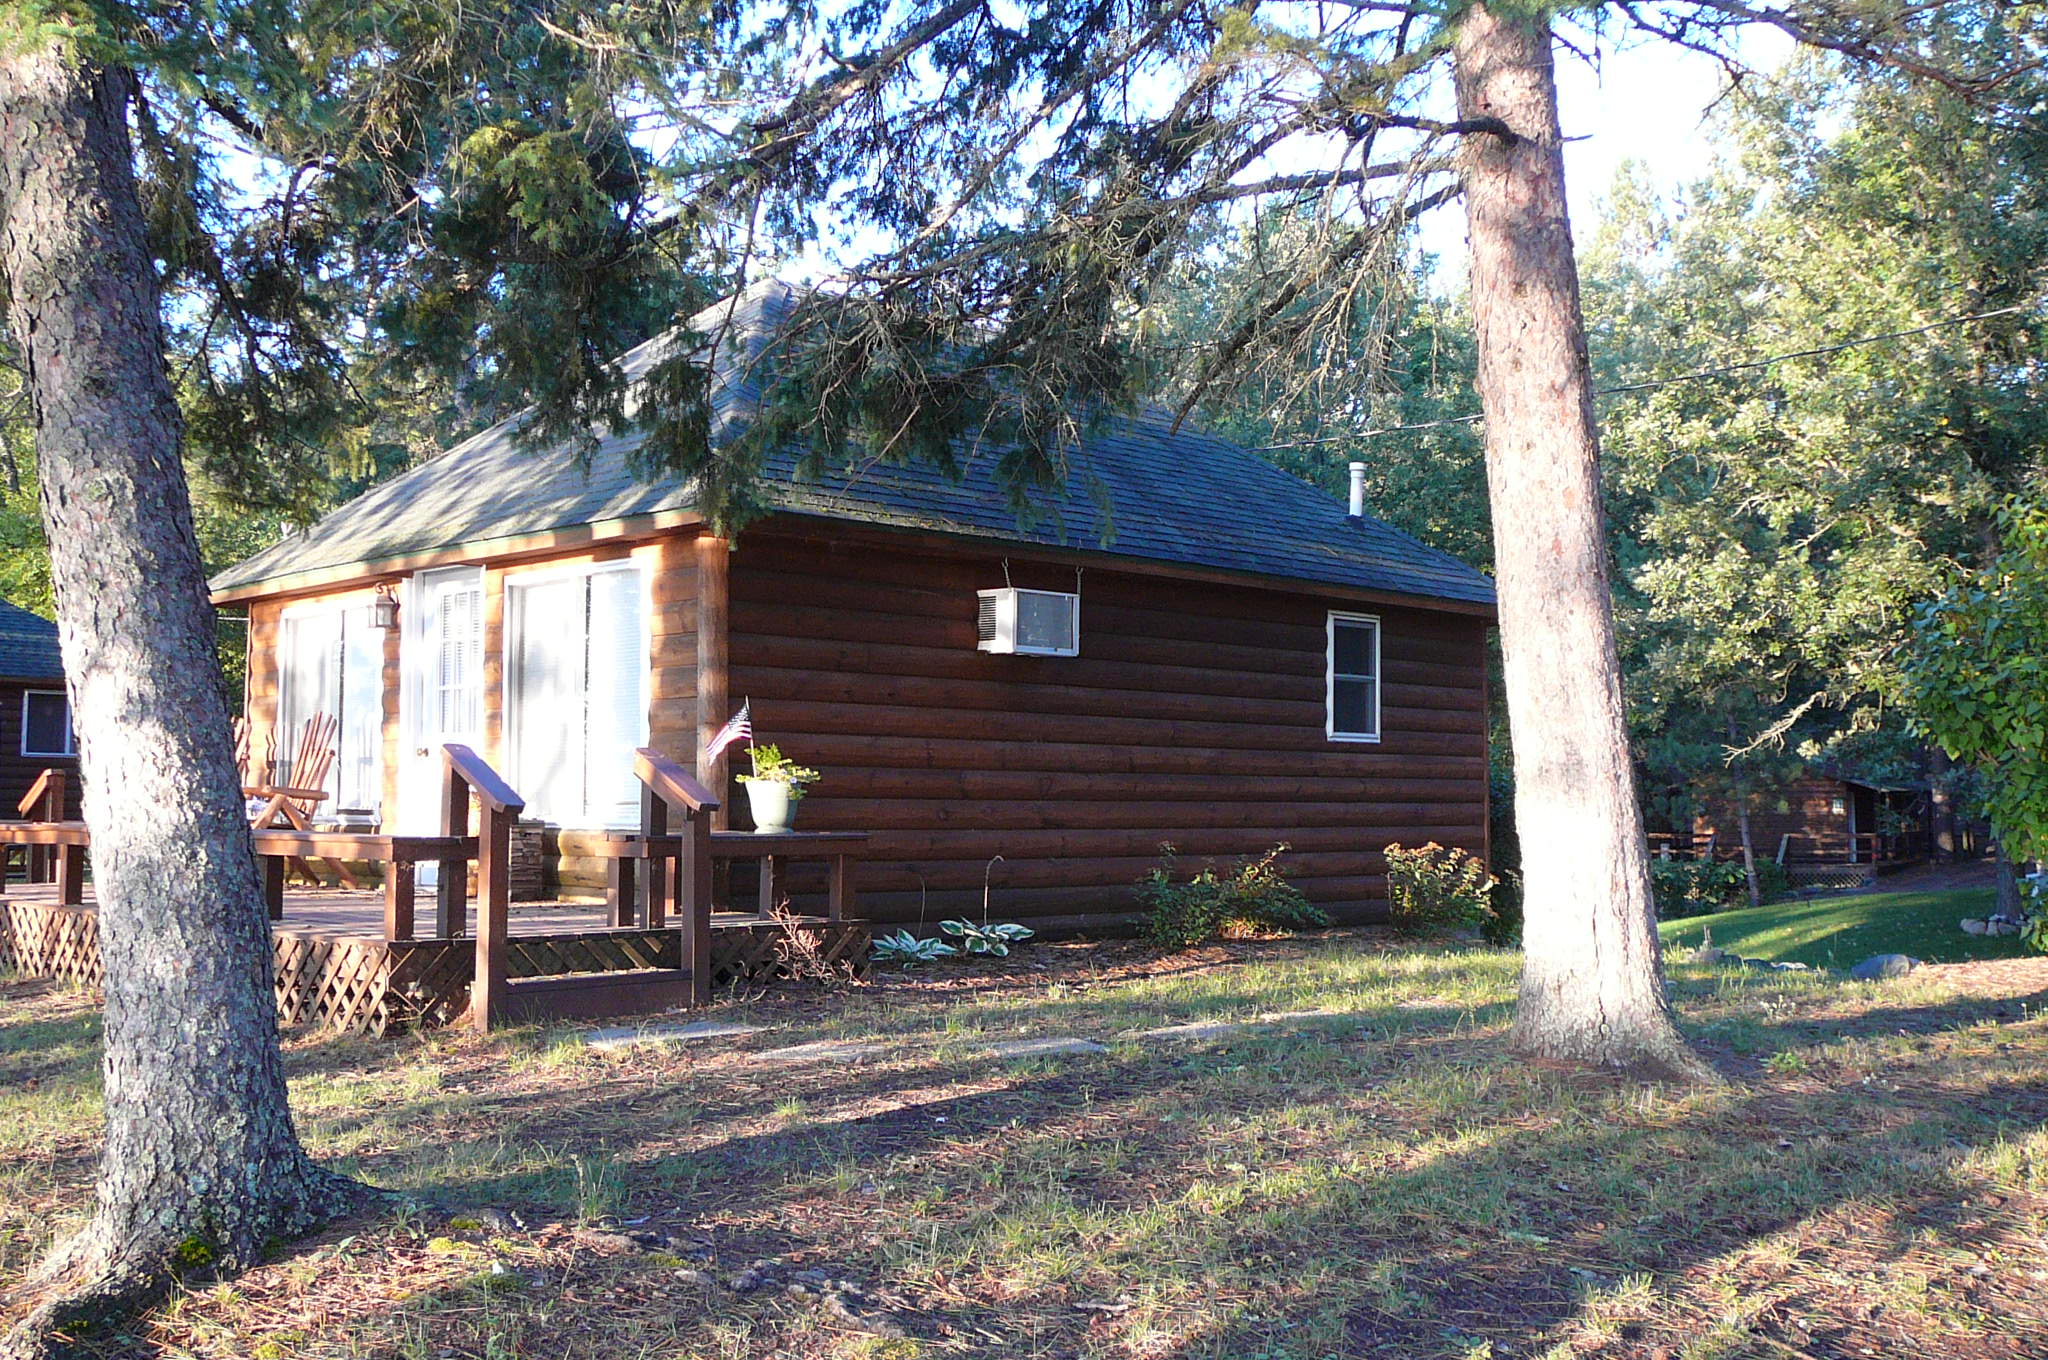 in mn lake wa ut payson rapids cabin rentals city near park packwood creekside pa az cabins utah arizona